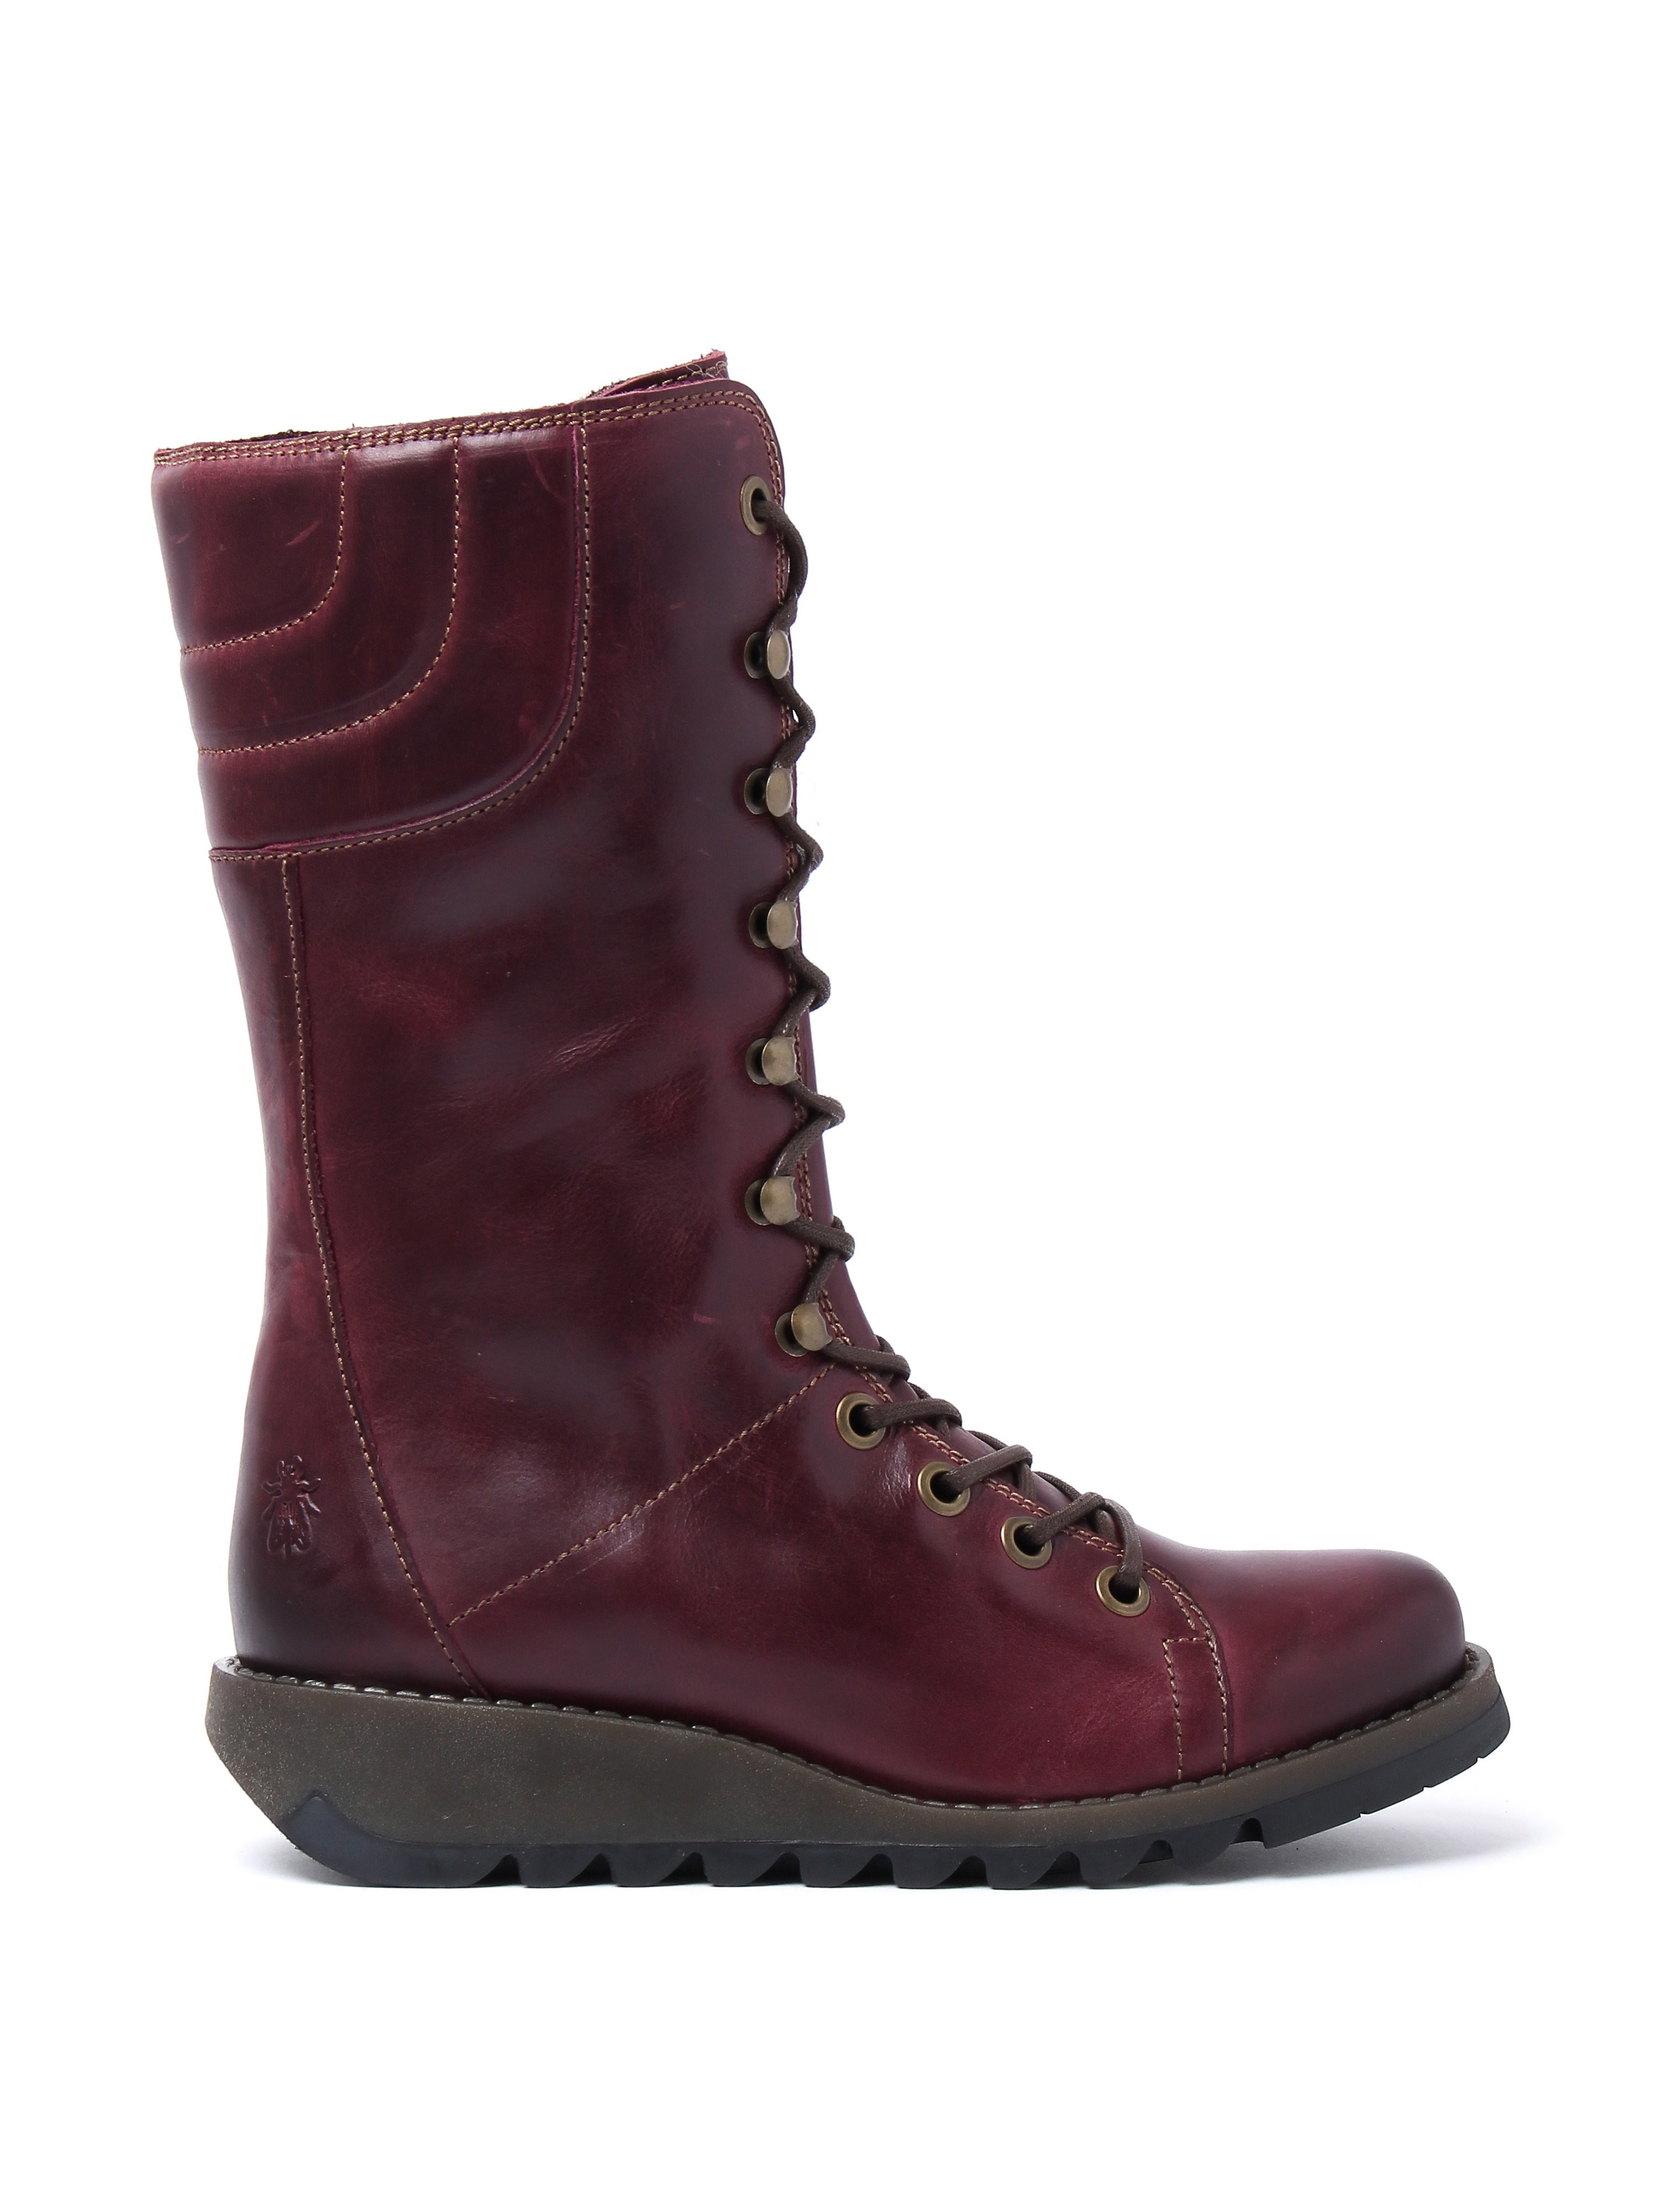 Fly London Women's Ster768fly Rug Boots - Purple Leather